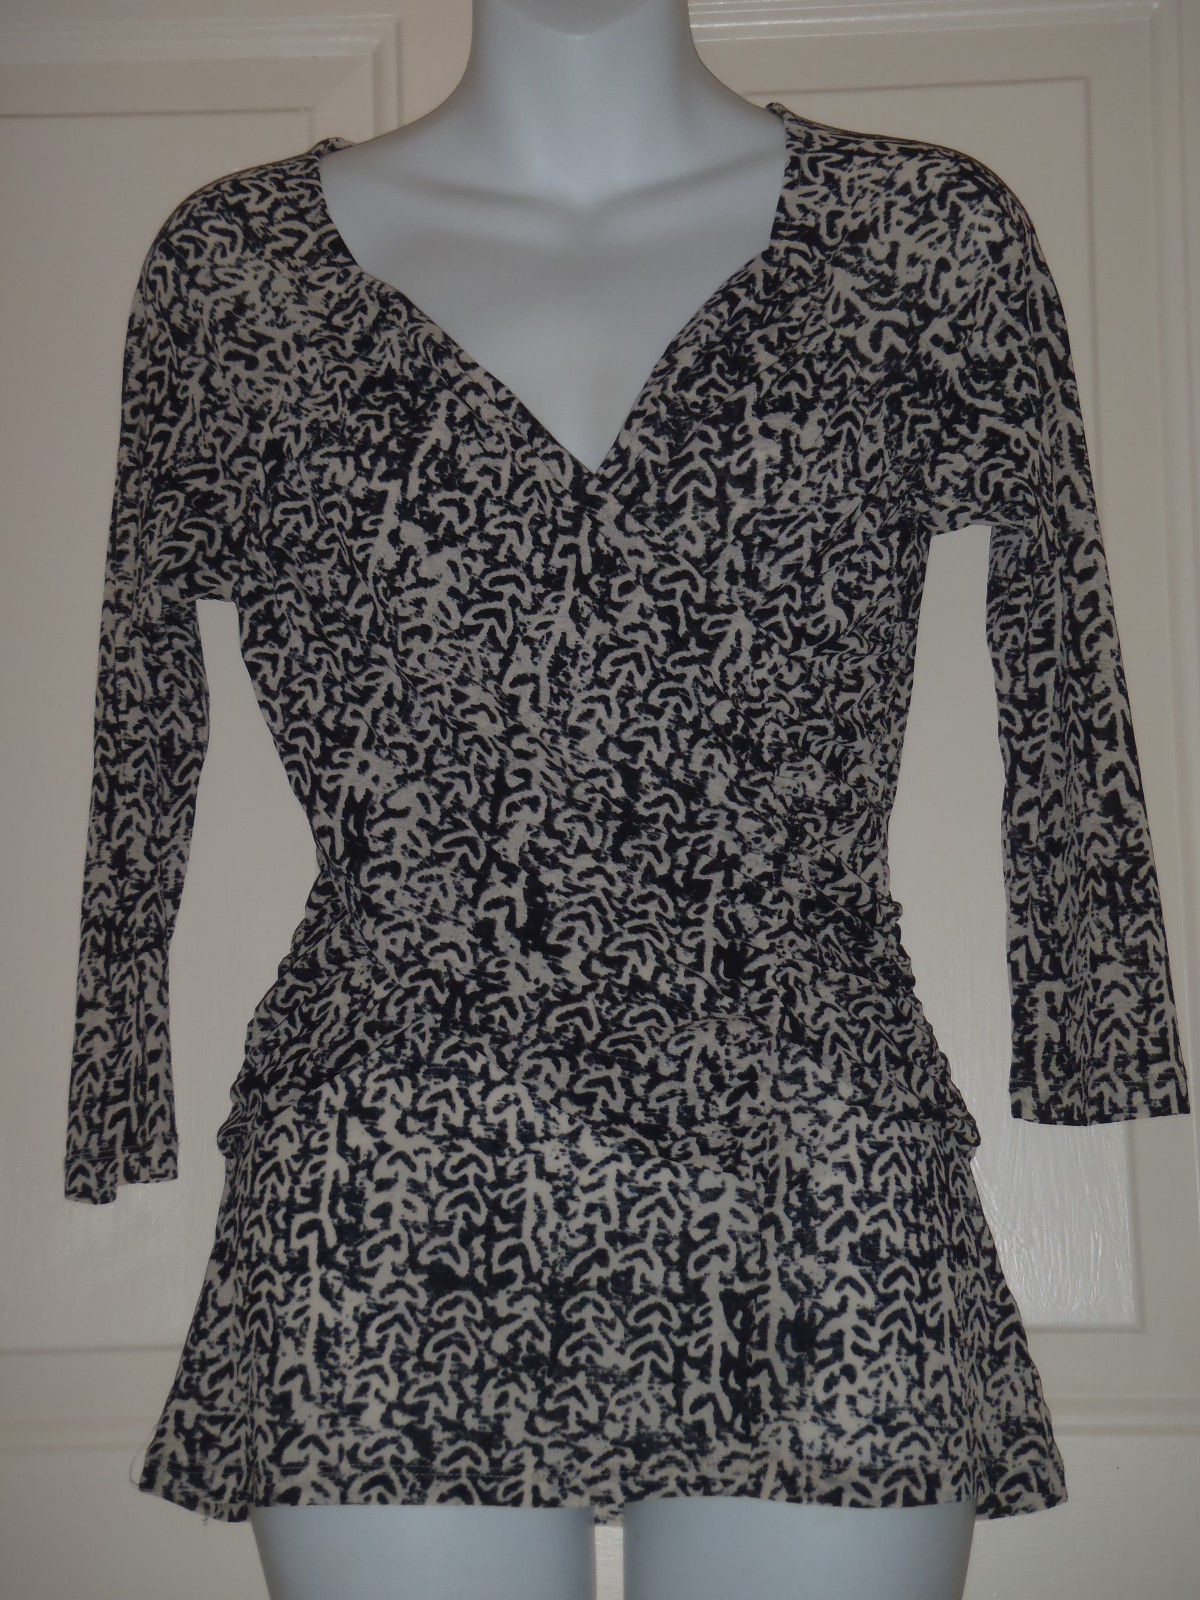 74f049d79413df Anthropologie Meadow Rue Black Cream Printed and 50 similar items